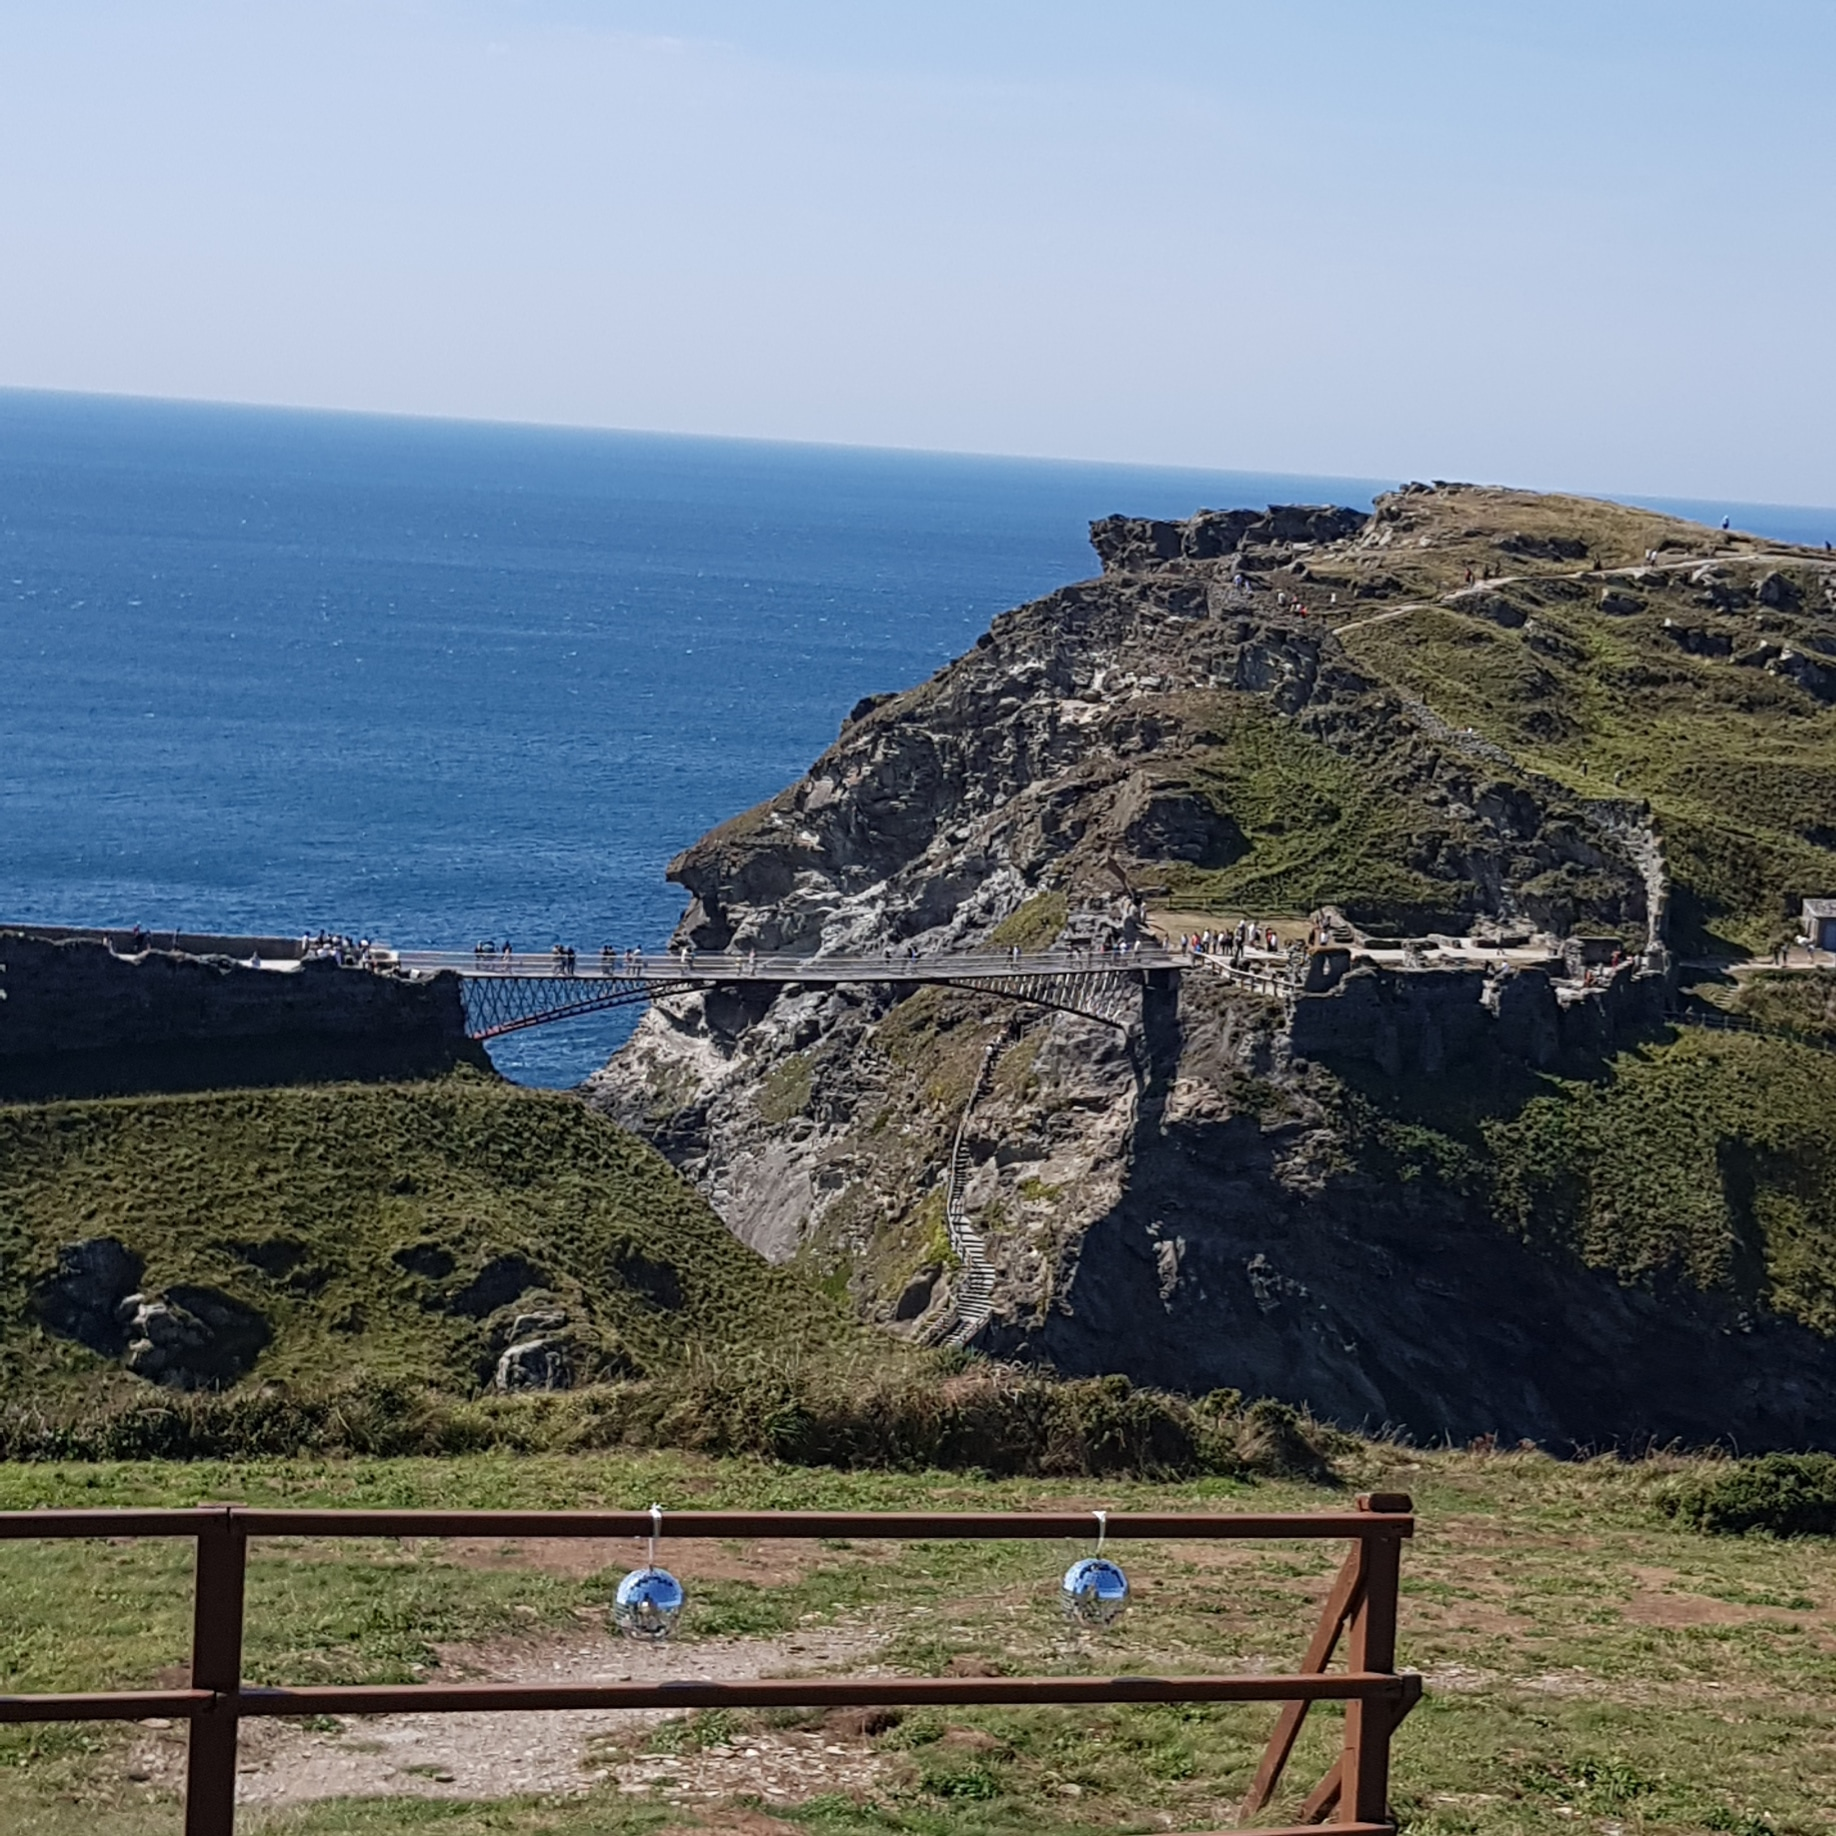 Tintagel Bridge from afar